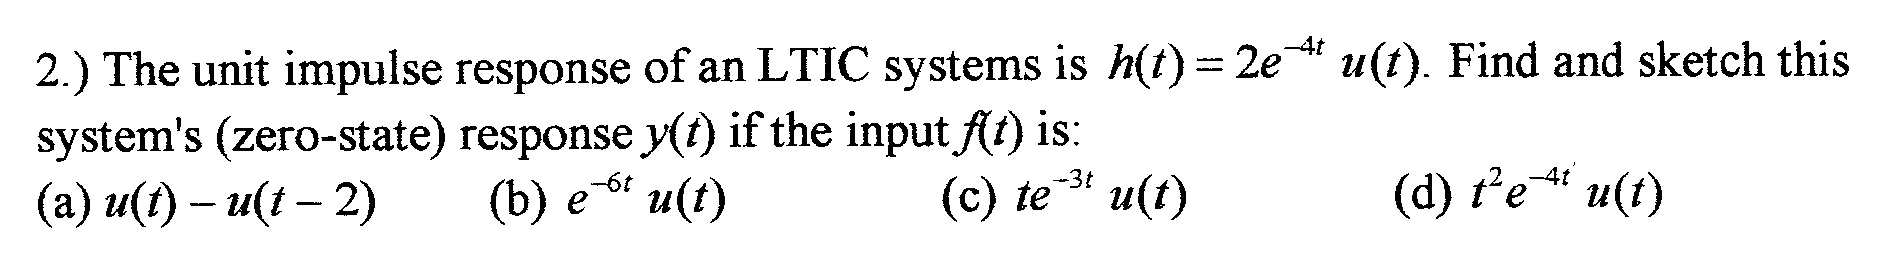 The unit impulse response of an LTIC systems is h(